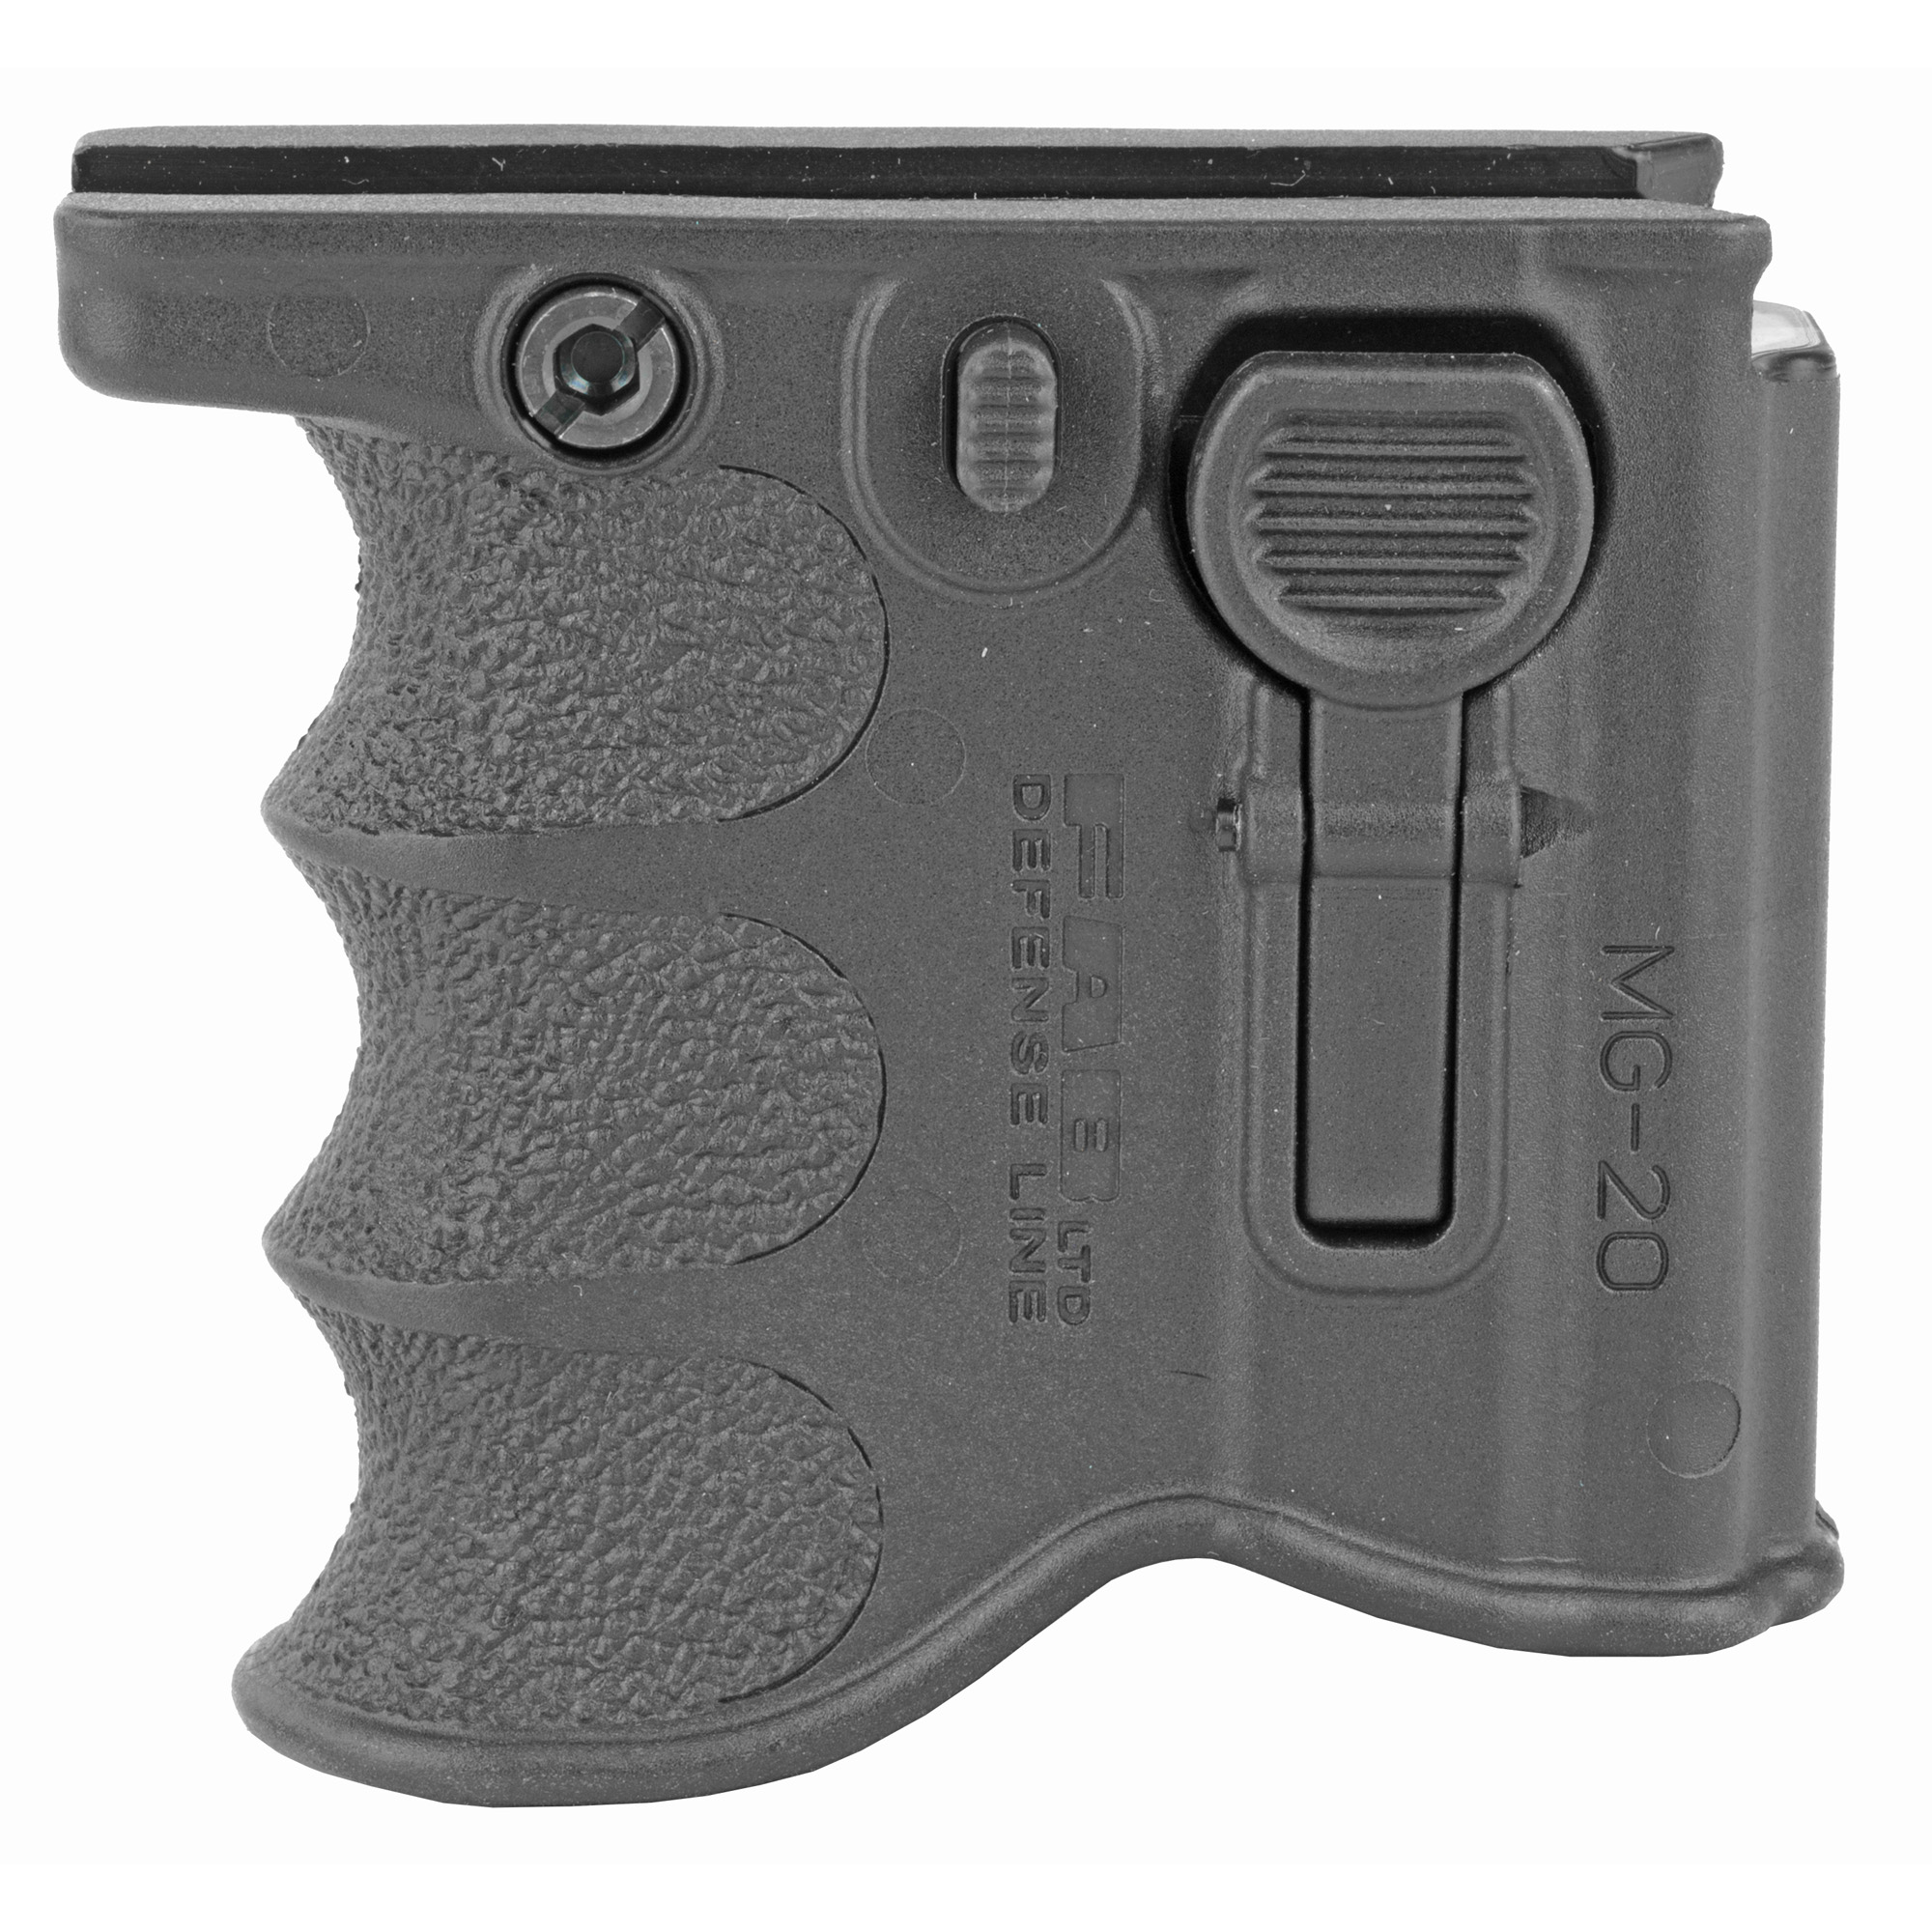 "The MG-20 is a 2-in-1 foregrip and spare magazine holder"" enhancing tactical efficiency by accommodating an additional magazine in hand and facilitates swift magazine change."